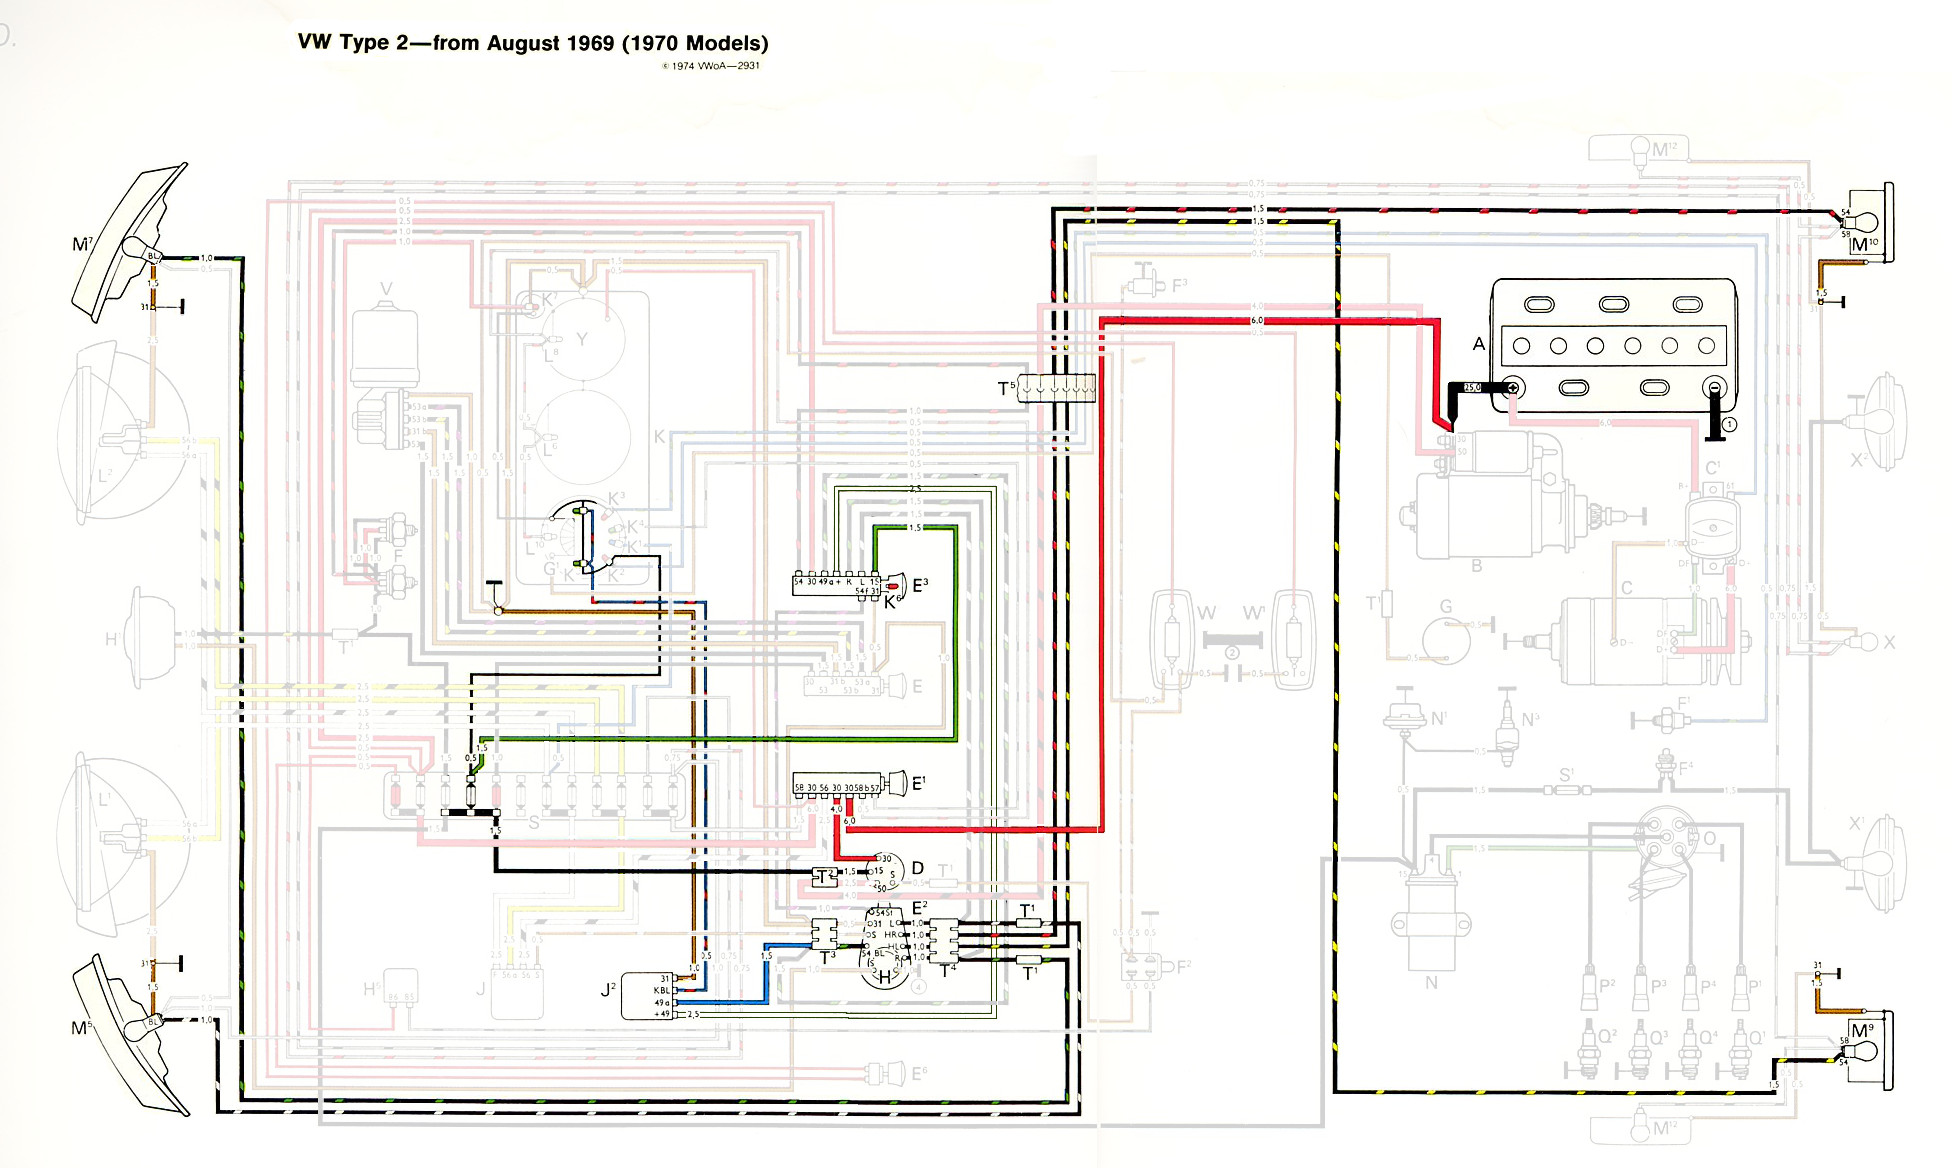 1970bus_signals 1970 vw beetle wiring diagram 1969 vw beetle turn signal wiring 1971 vw bus wiring diagram at mr168.co